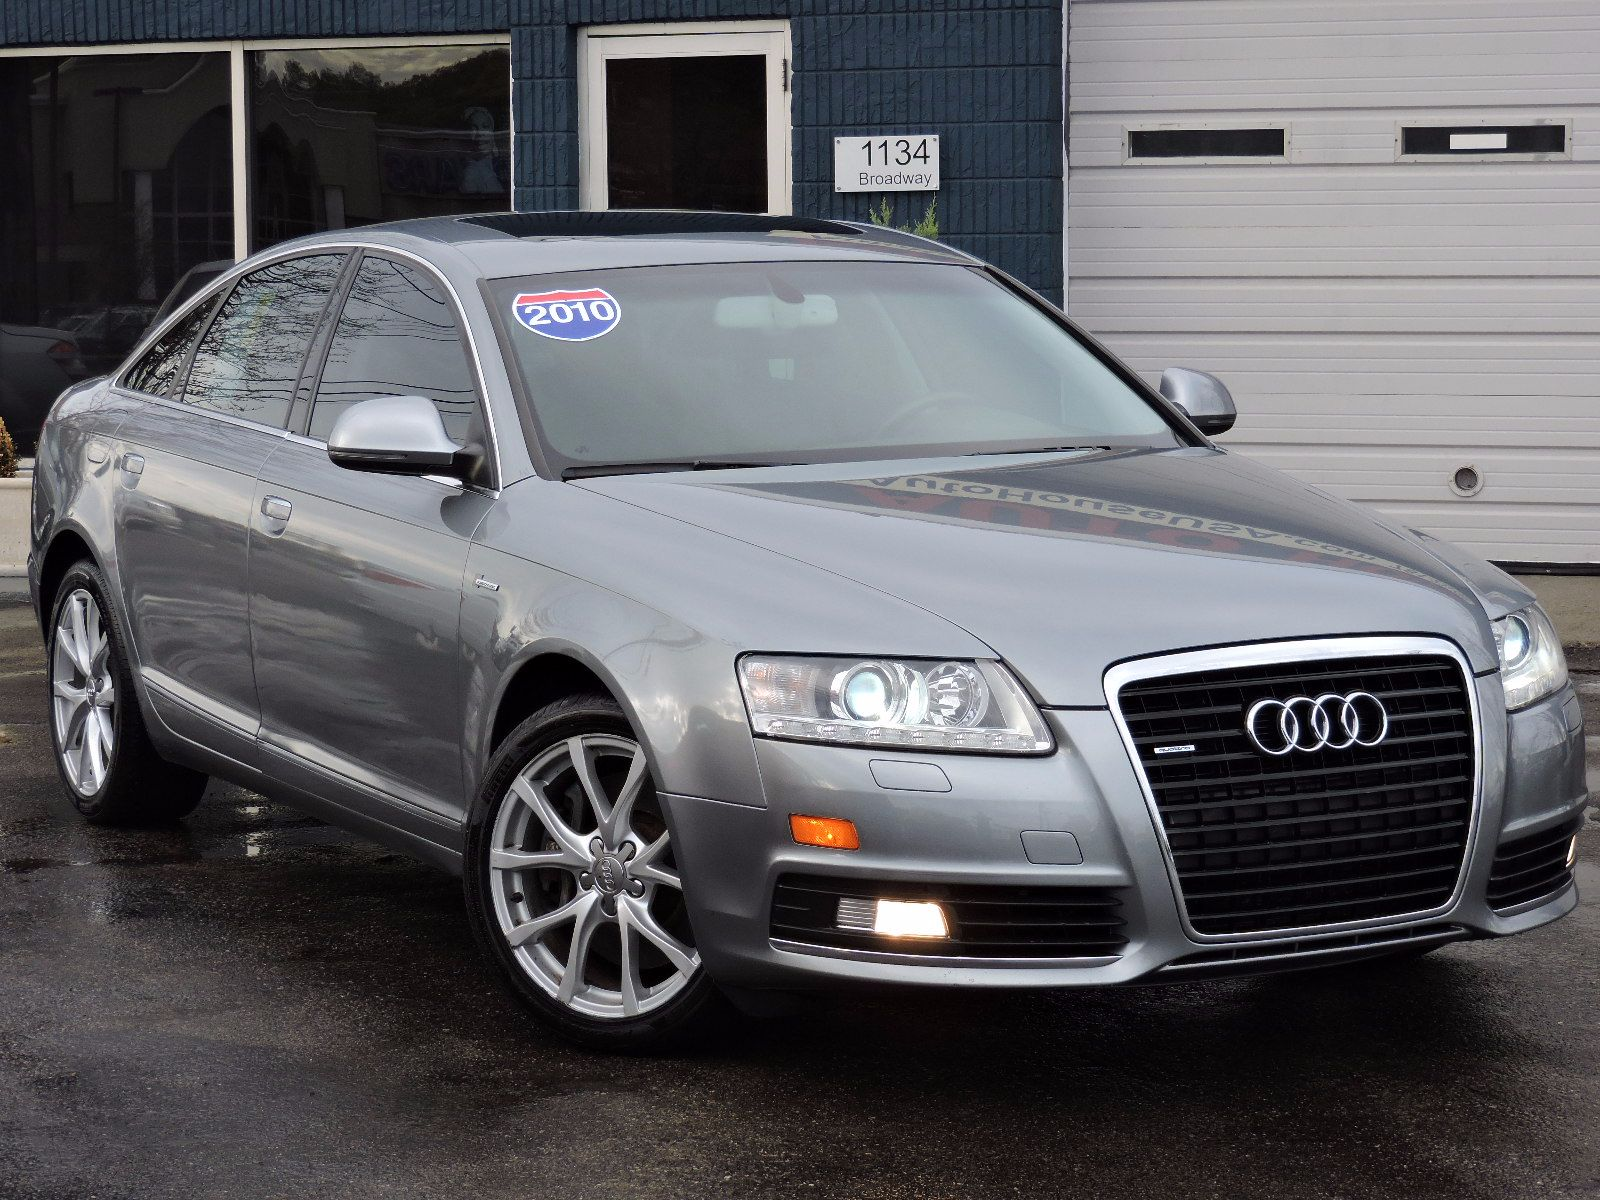 hight resolution of 2010 audi a6 quattro all wheel drive navigation